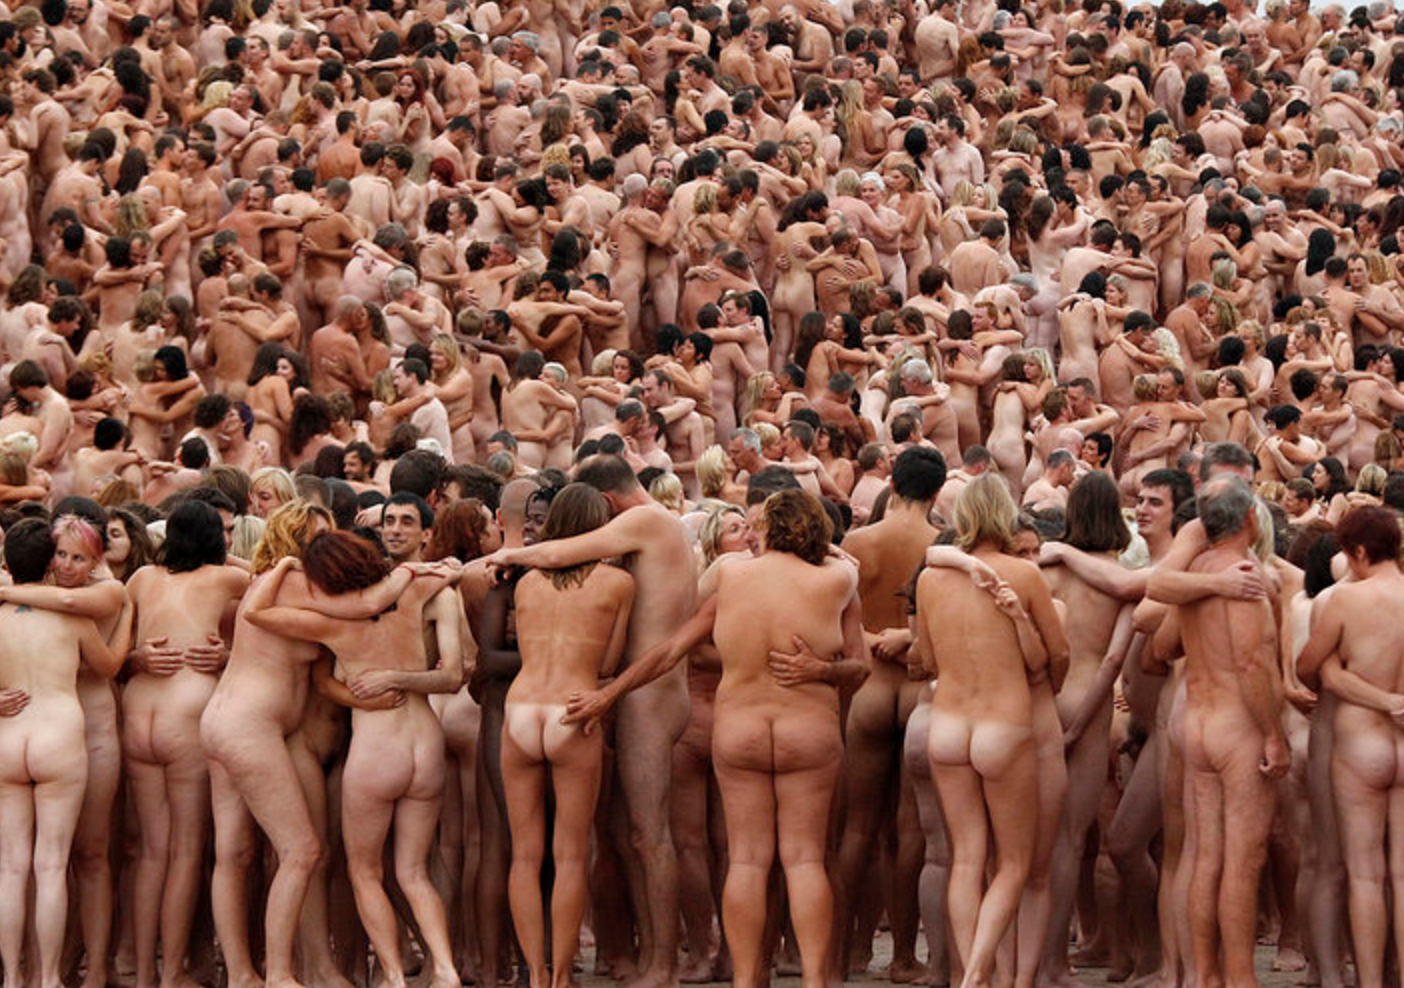 nude at the rnc